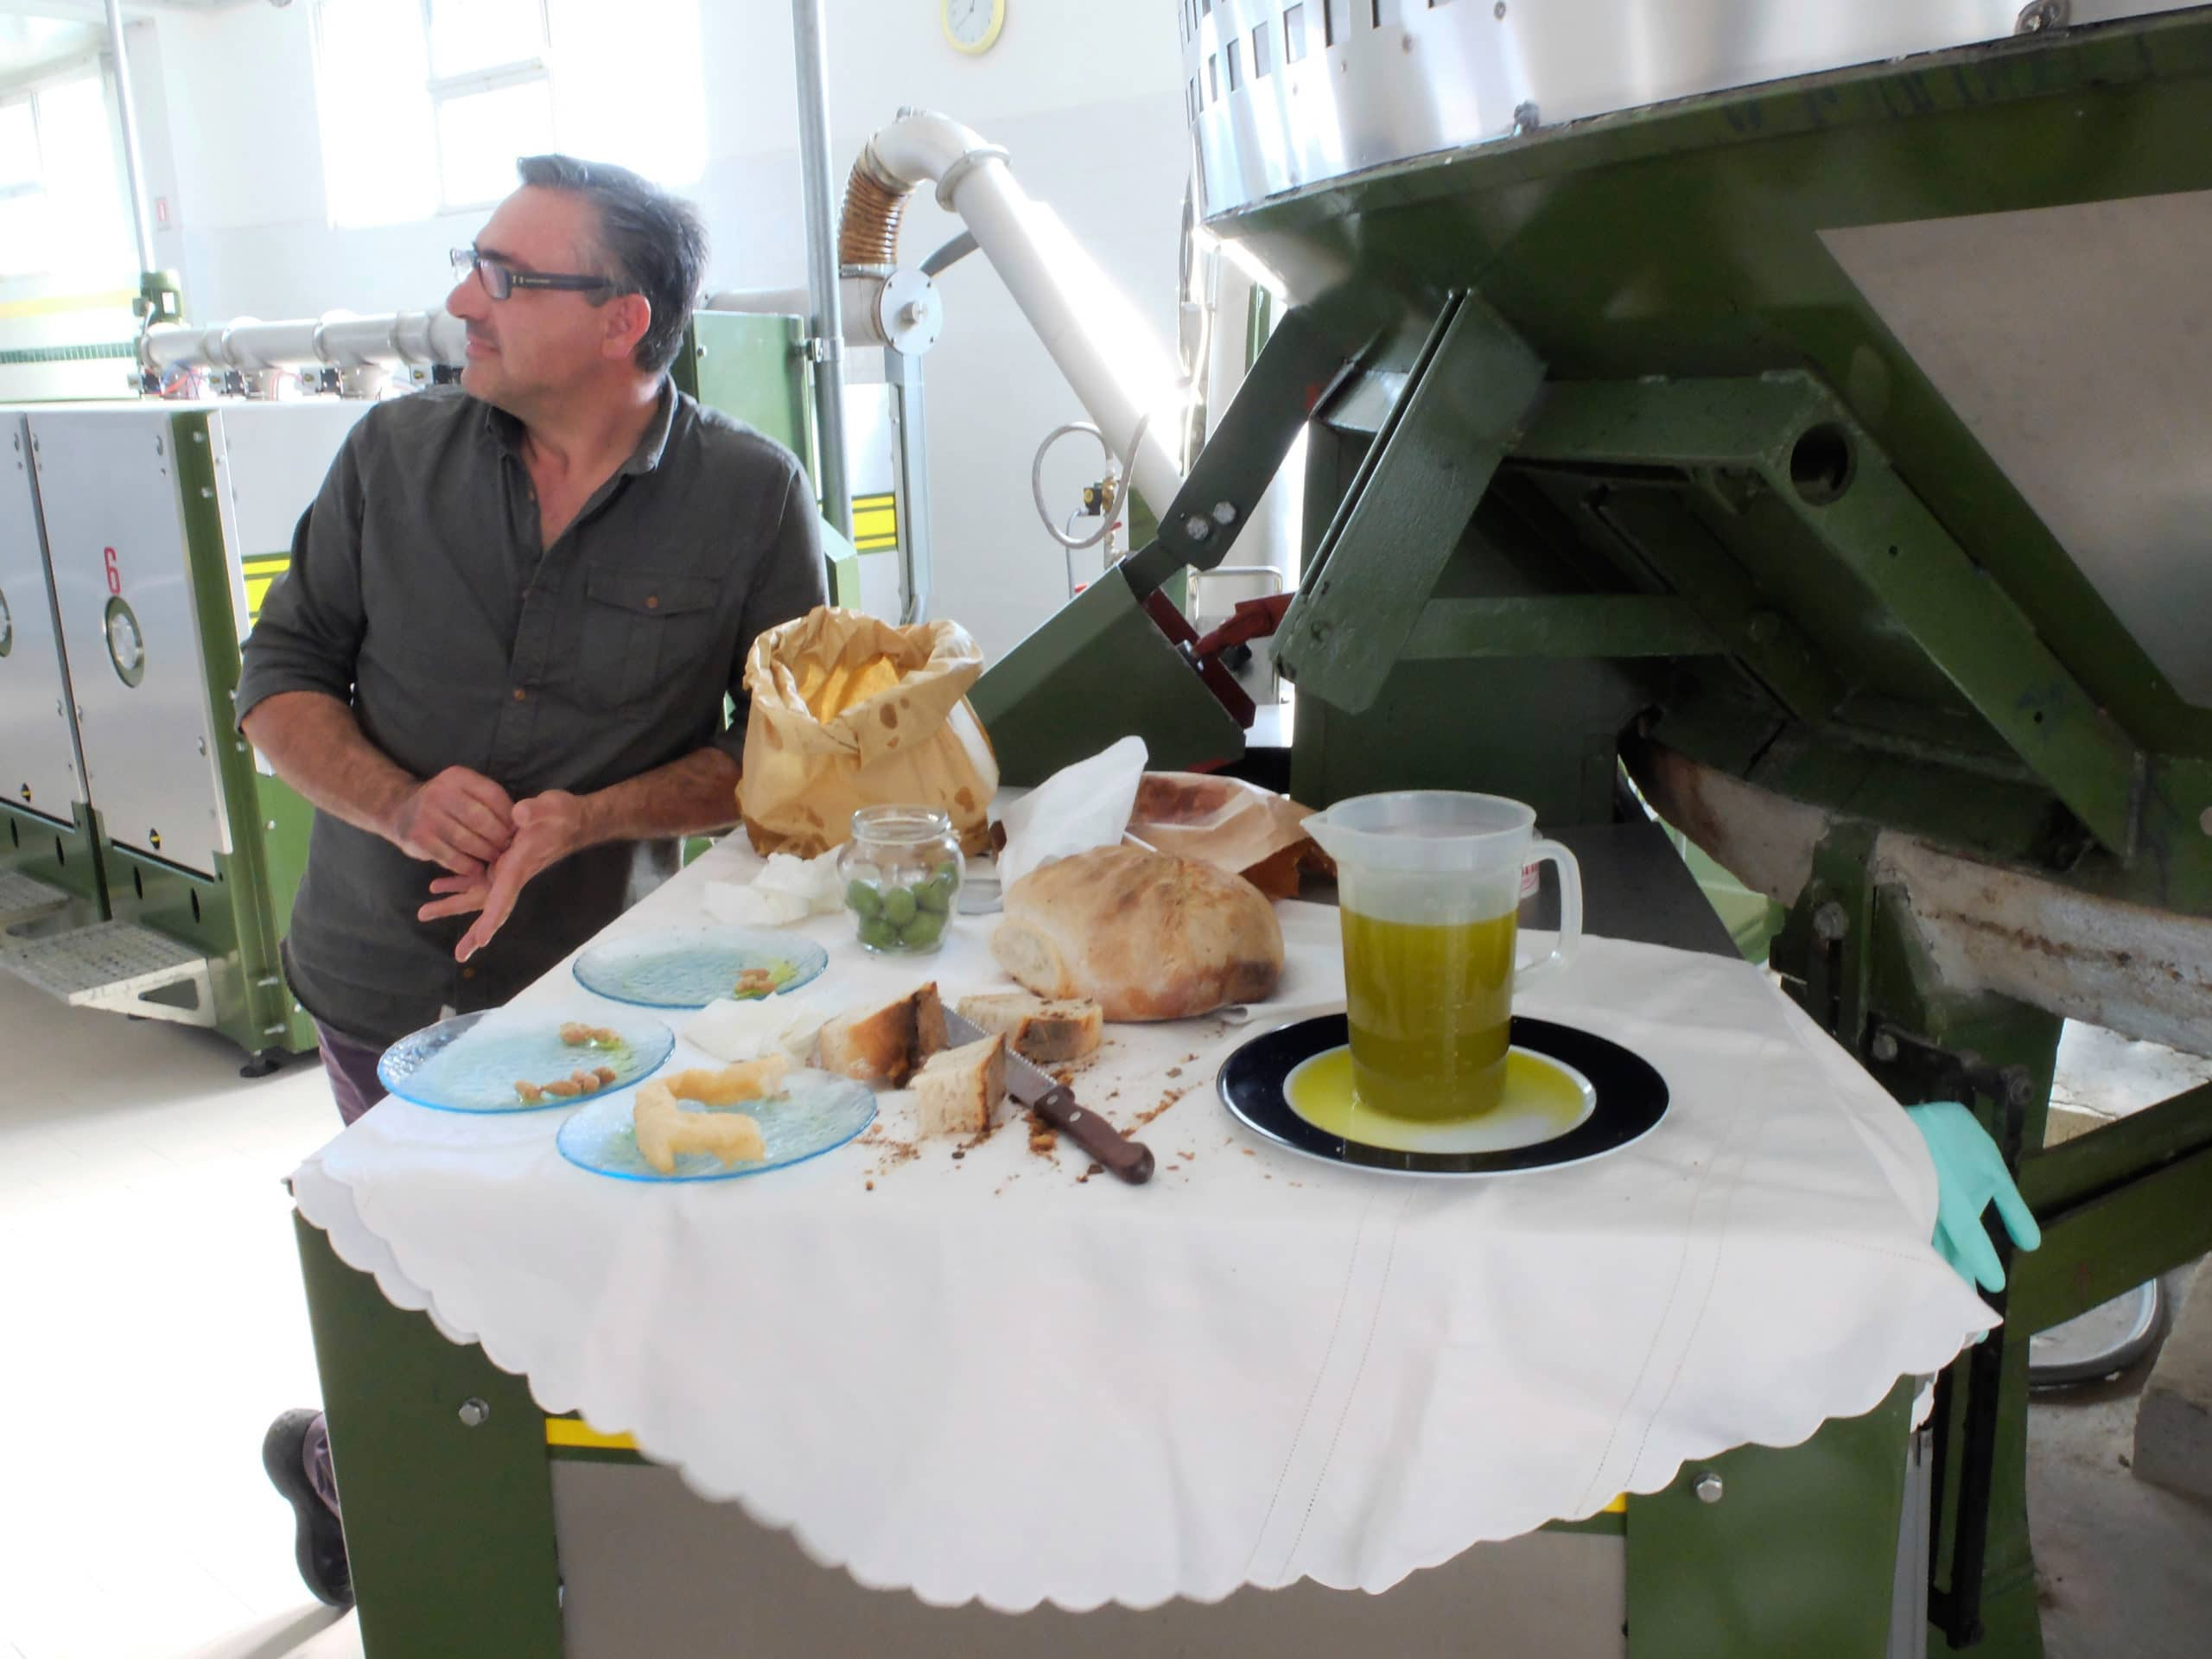 Nothing beats fresh olive oil with fresh bread, being shared here with mill owner Piero Rovitti.